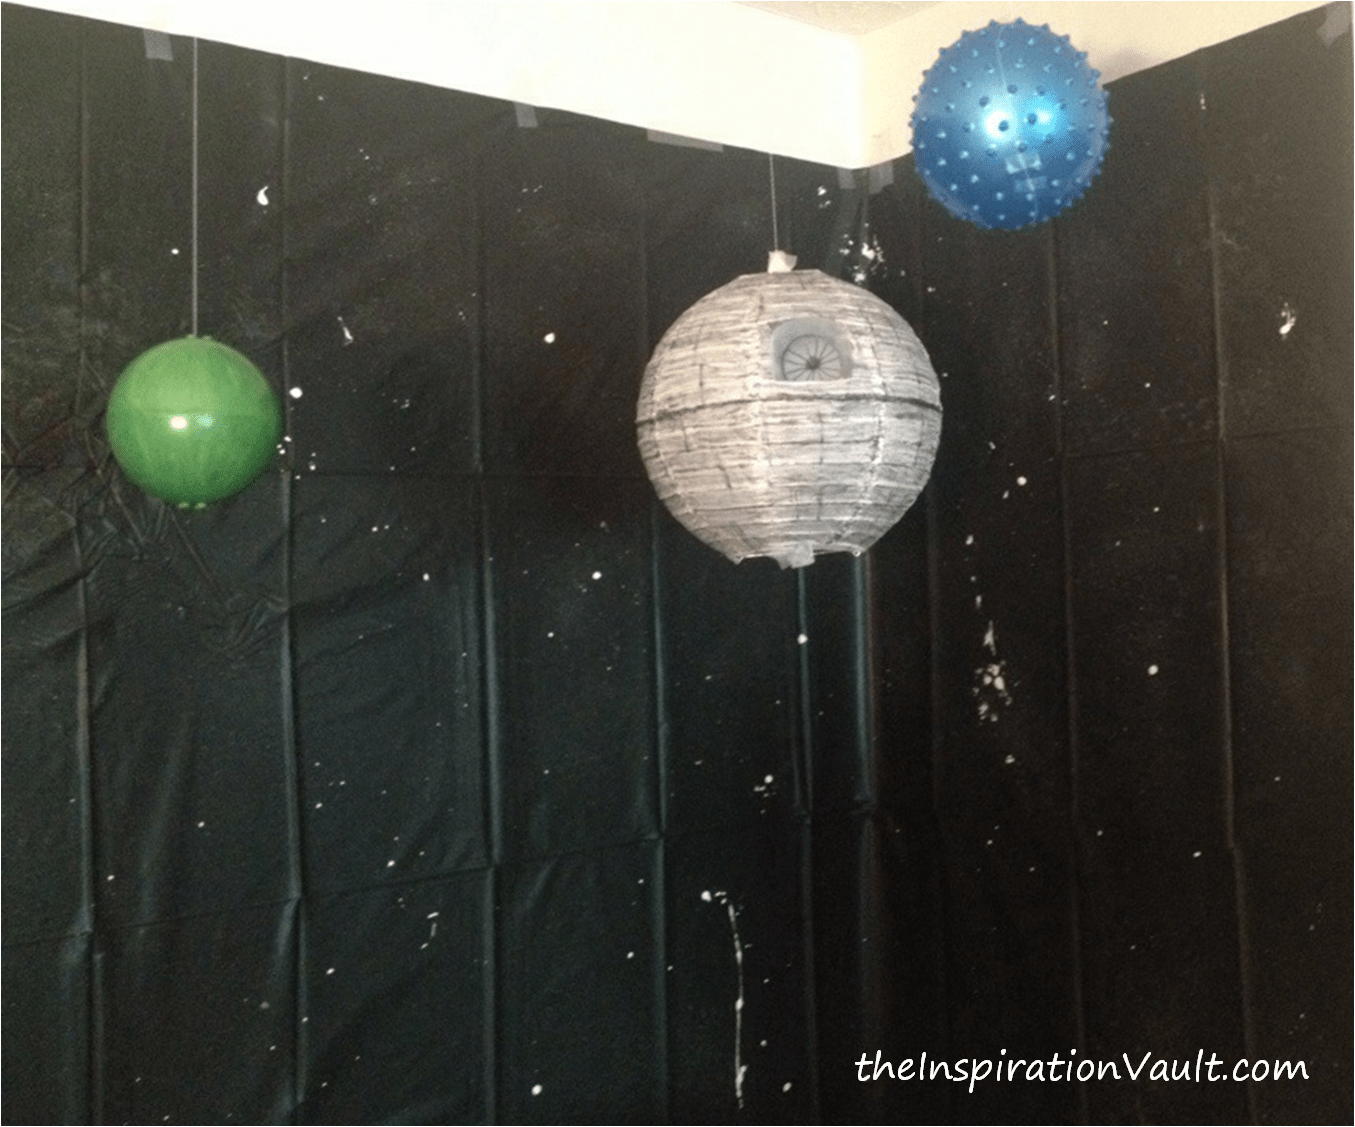 Star Wars Decorations Ideas Star Wars Theme Party The Inspiration Vault